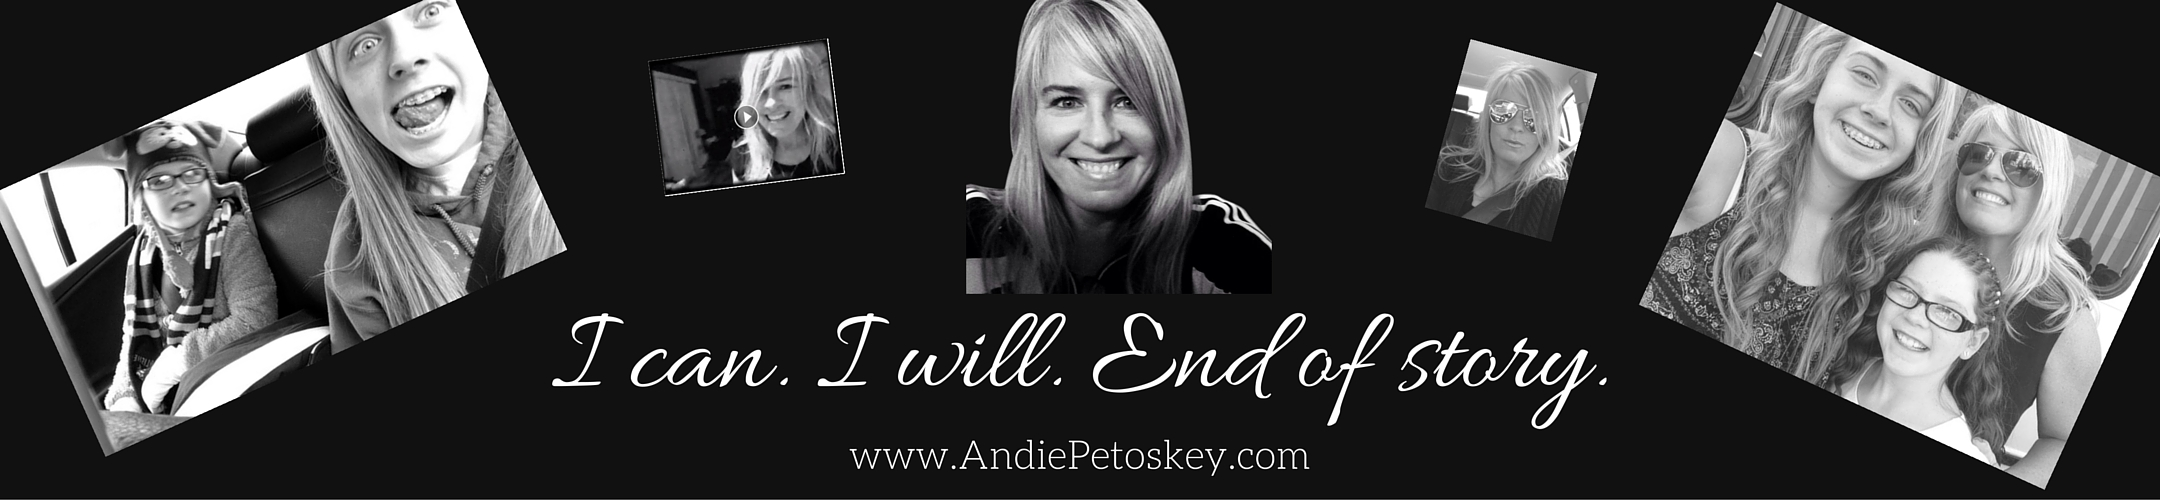 Work with Andie Petoskey